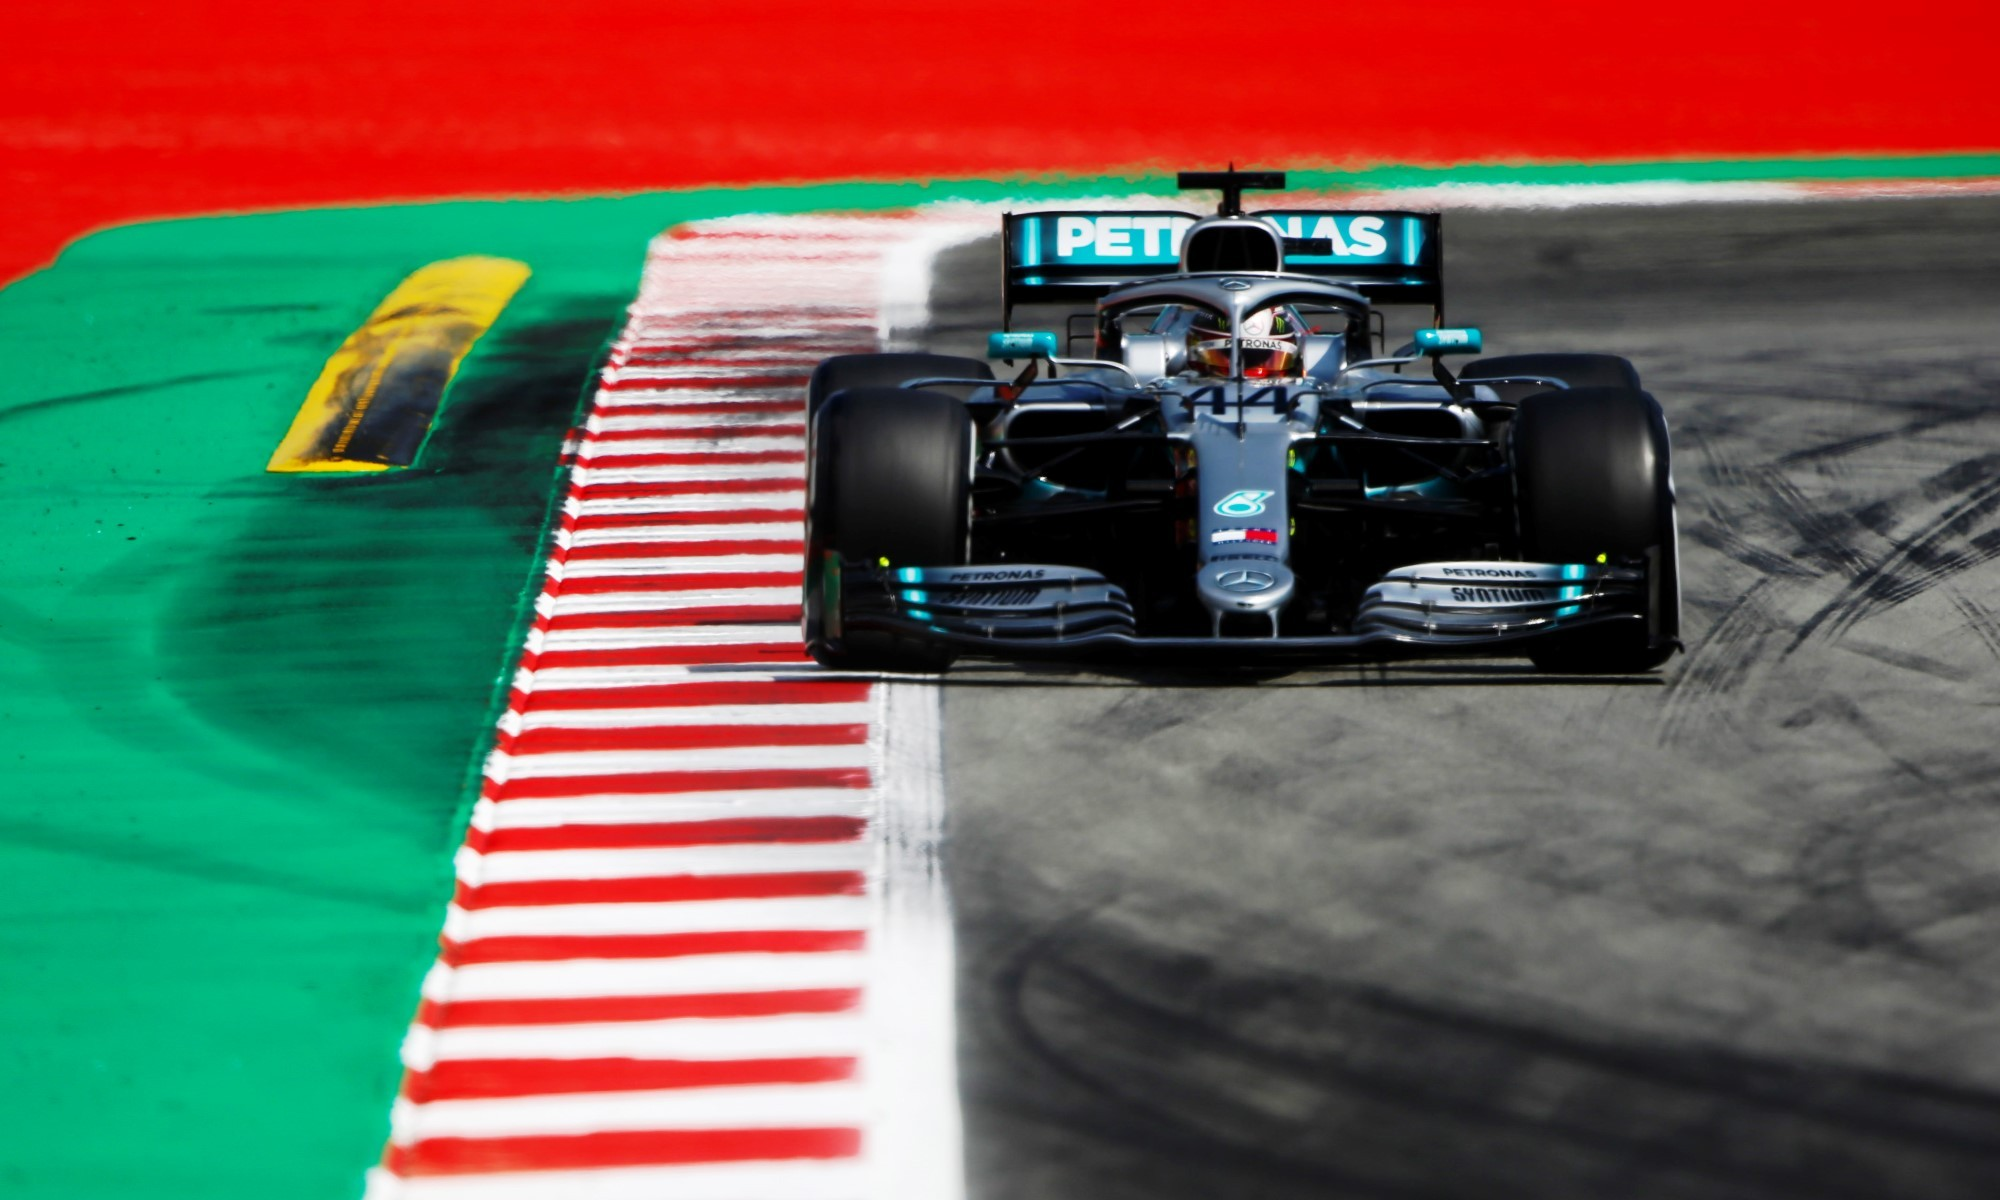 Lewis Hamilton was unchallenged throughout the race